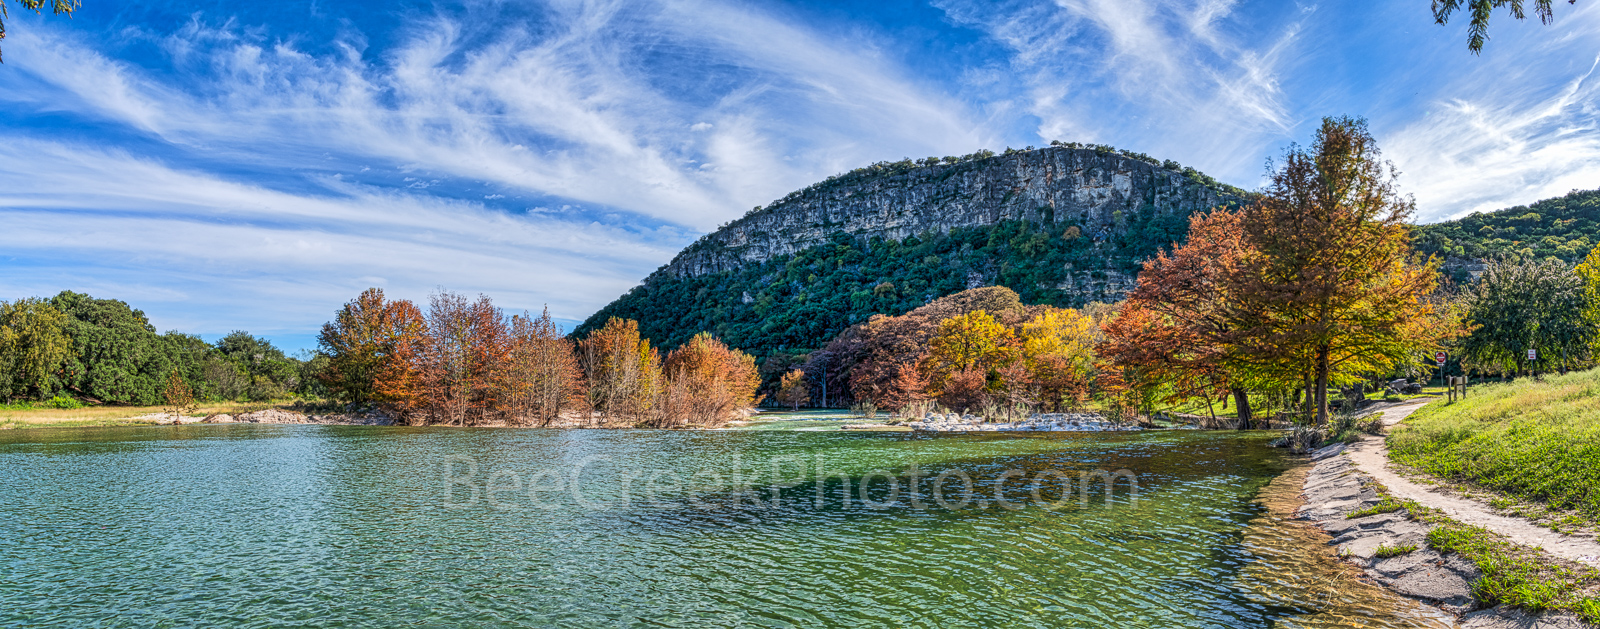 Fall, colors, Garner State Park, Texas landscape, canvas, prints, Texas hill country, trees, maples, cypress trees, old baldy, downstream, dam, rocks, panorama, pano, panoramic, beecreekphoto.com,, photo